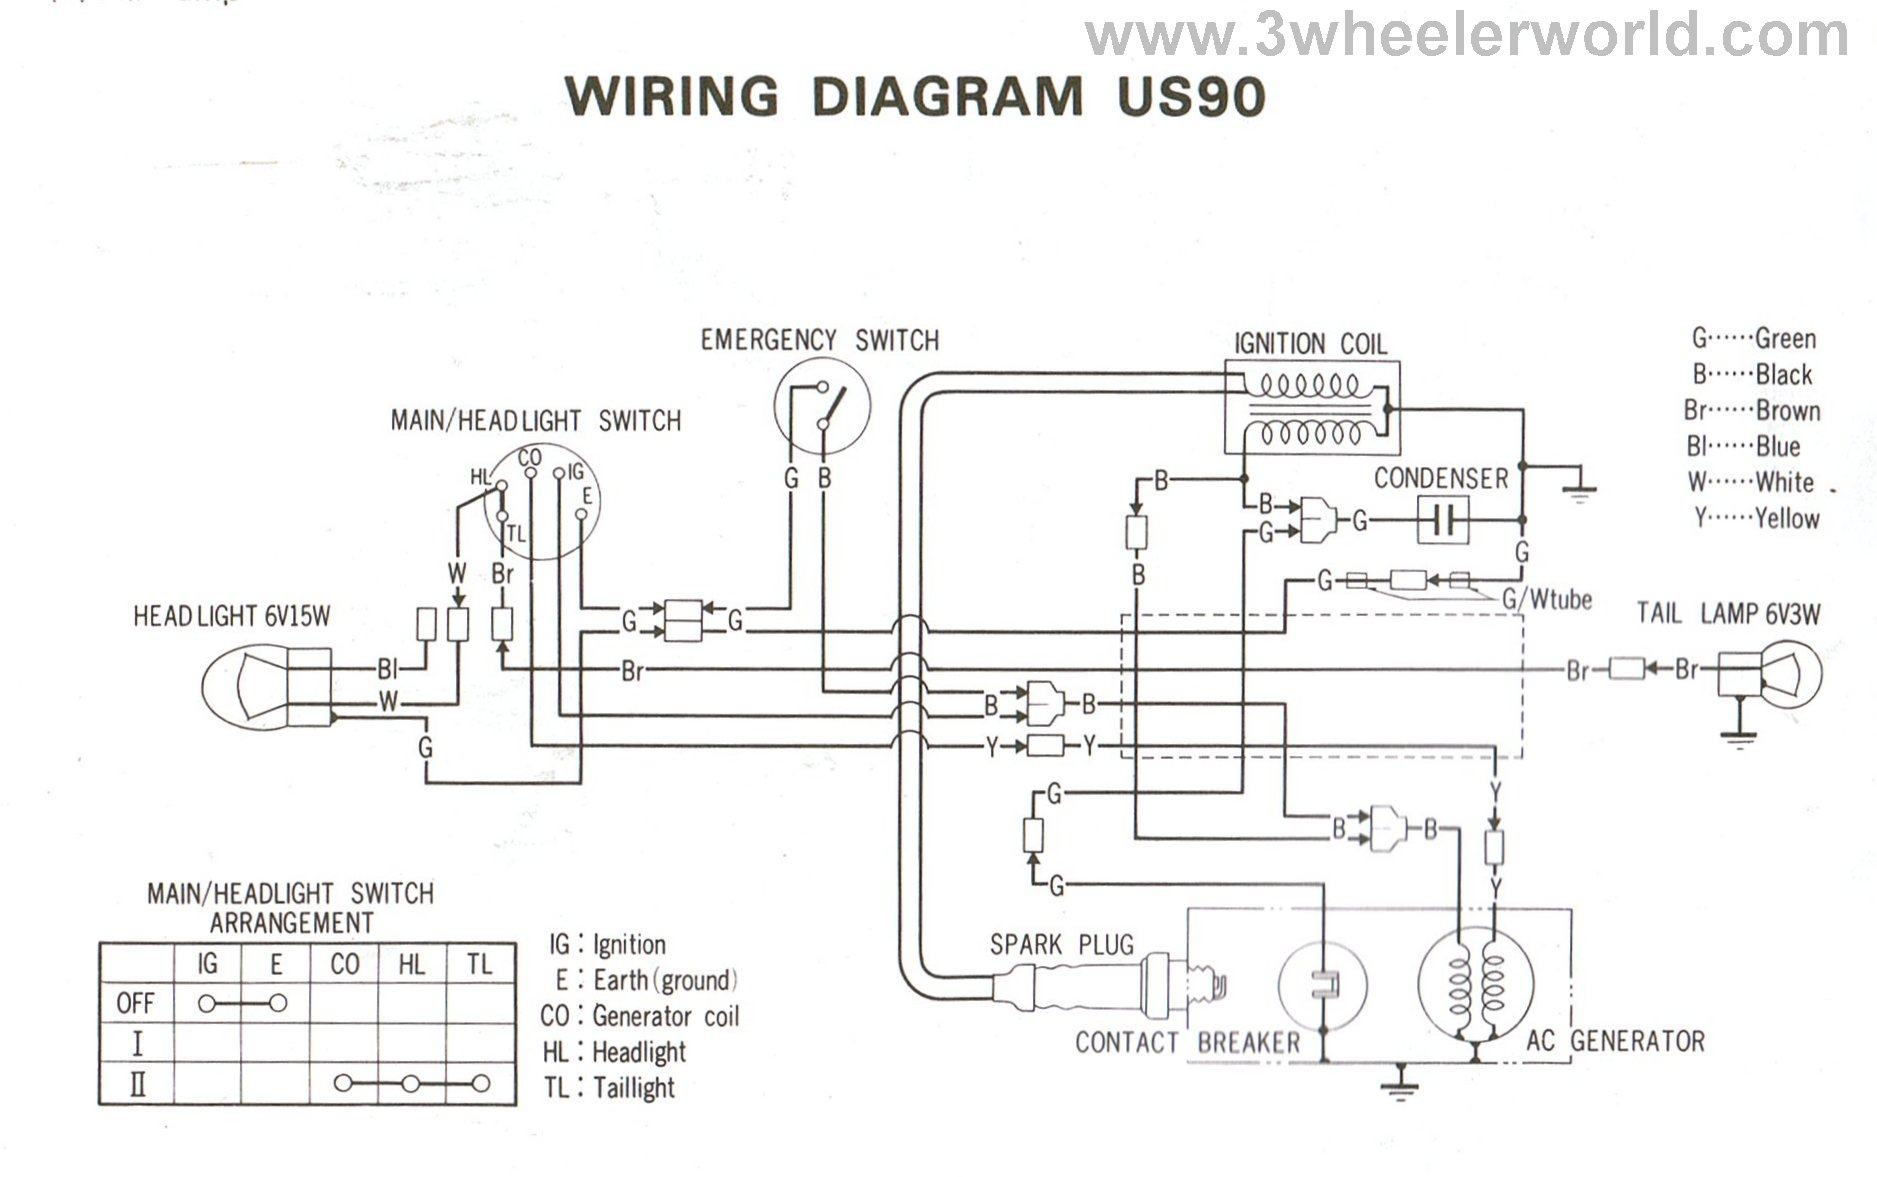 US90HM 3 wheeler world tech help honda wiring diagrams honda trail 90 wiring diagram at readyjetset.co